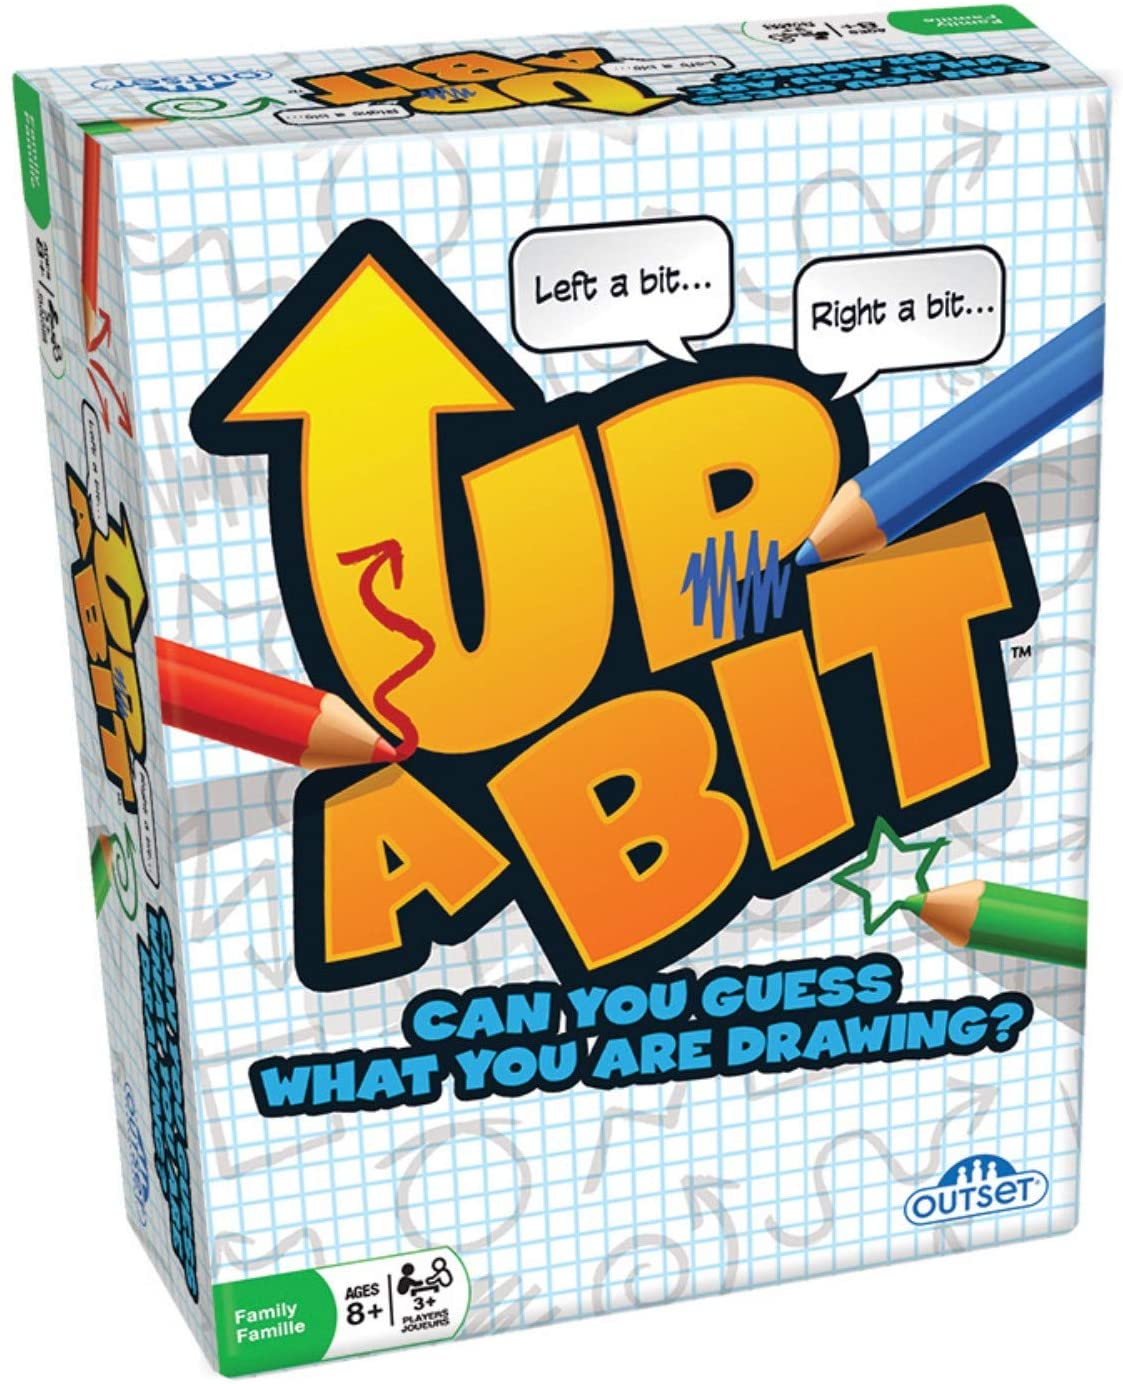 Outset Media Up a Bit Drawing Card Game - Describe an Object to Draw and Guess - Family Guessing Game Ages 8+ - Contains 100 Objects Cards, 250 Double Sided Grid Sheets